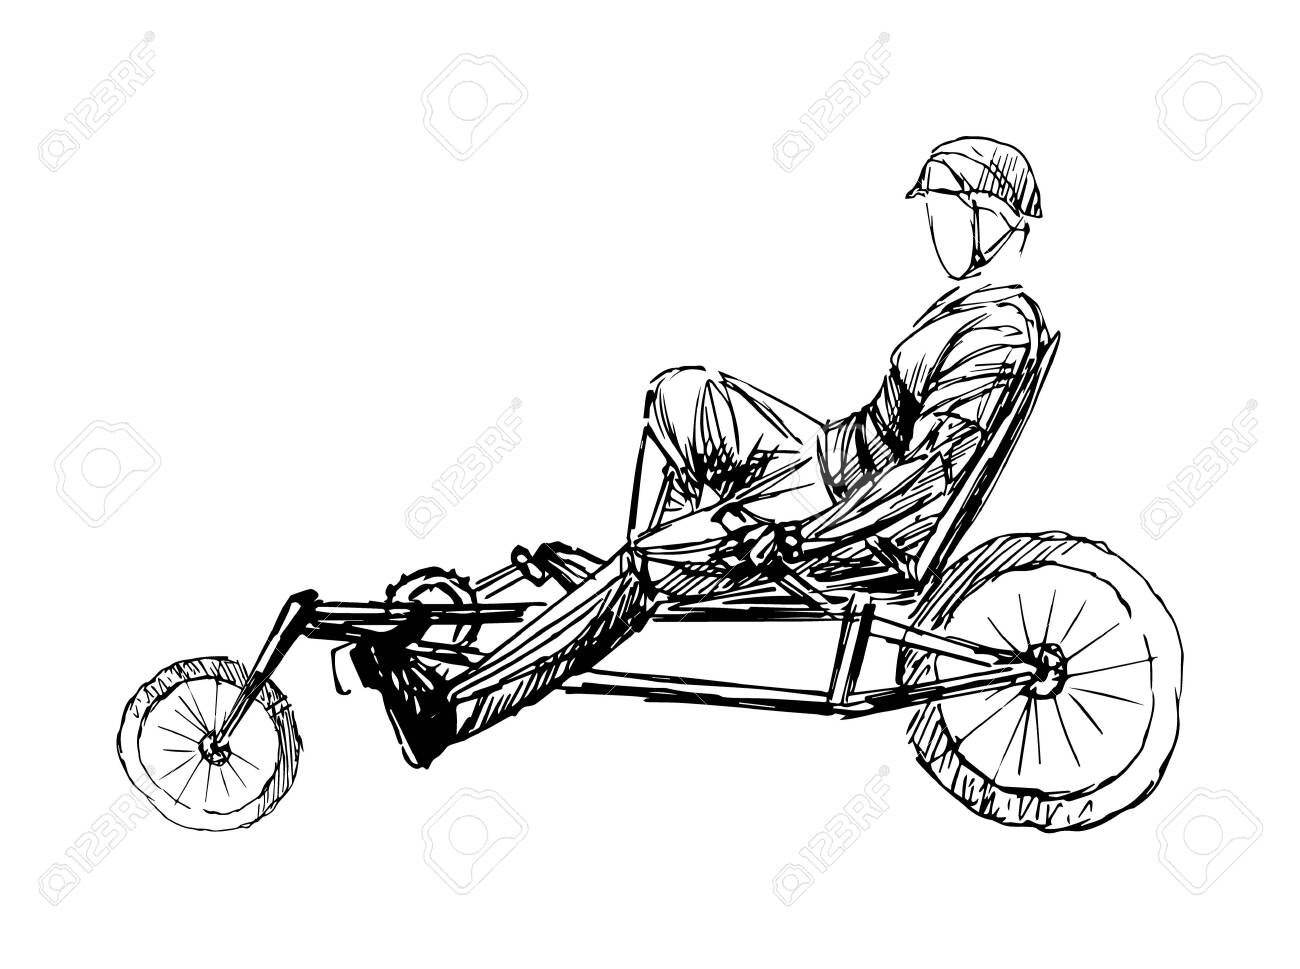 Stylized, geometric bicyclist, cyclist sketch isolated. Sportsman, athlete silhouette illustration vector. - 138426881